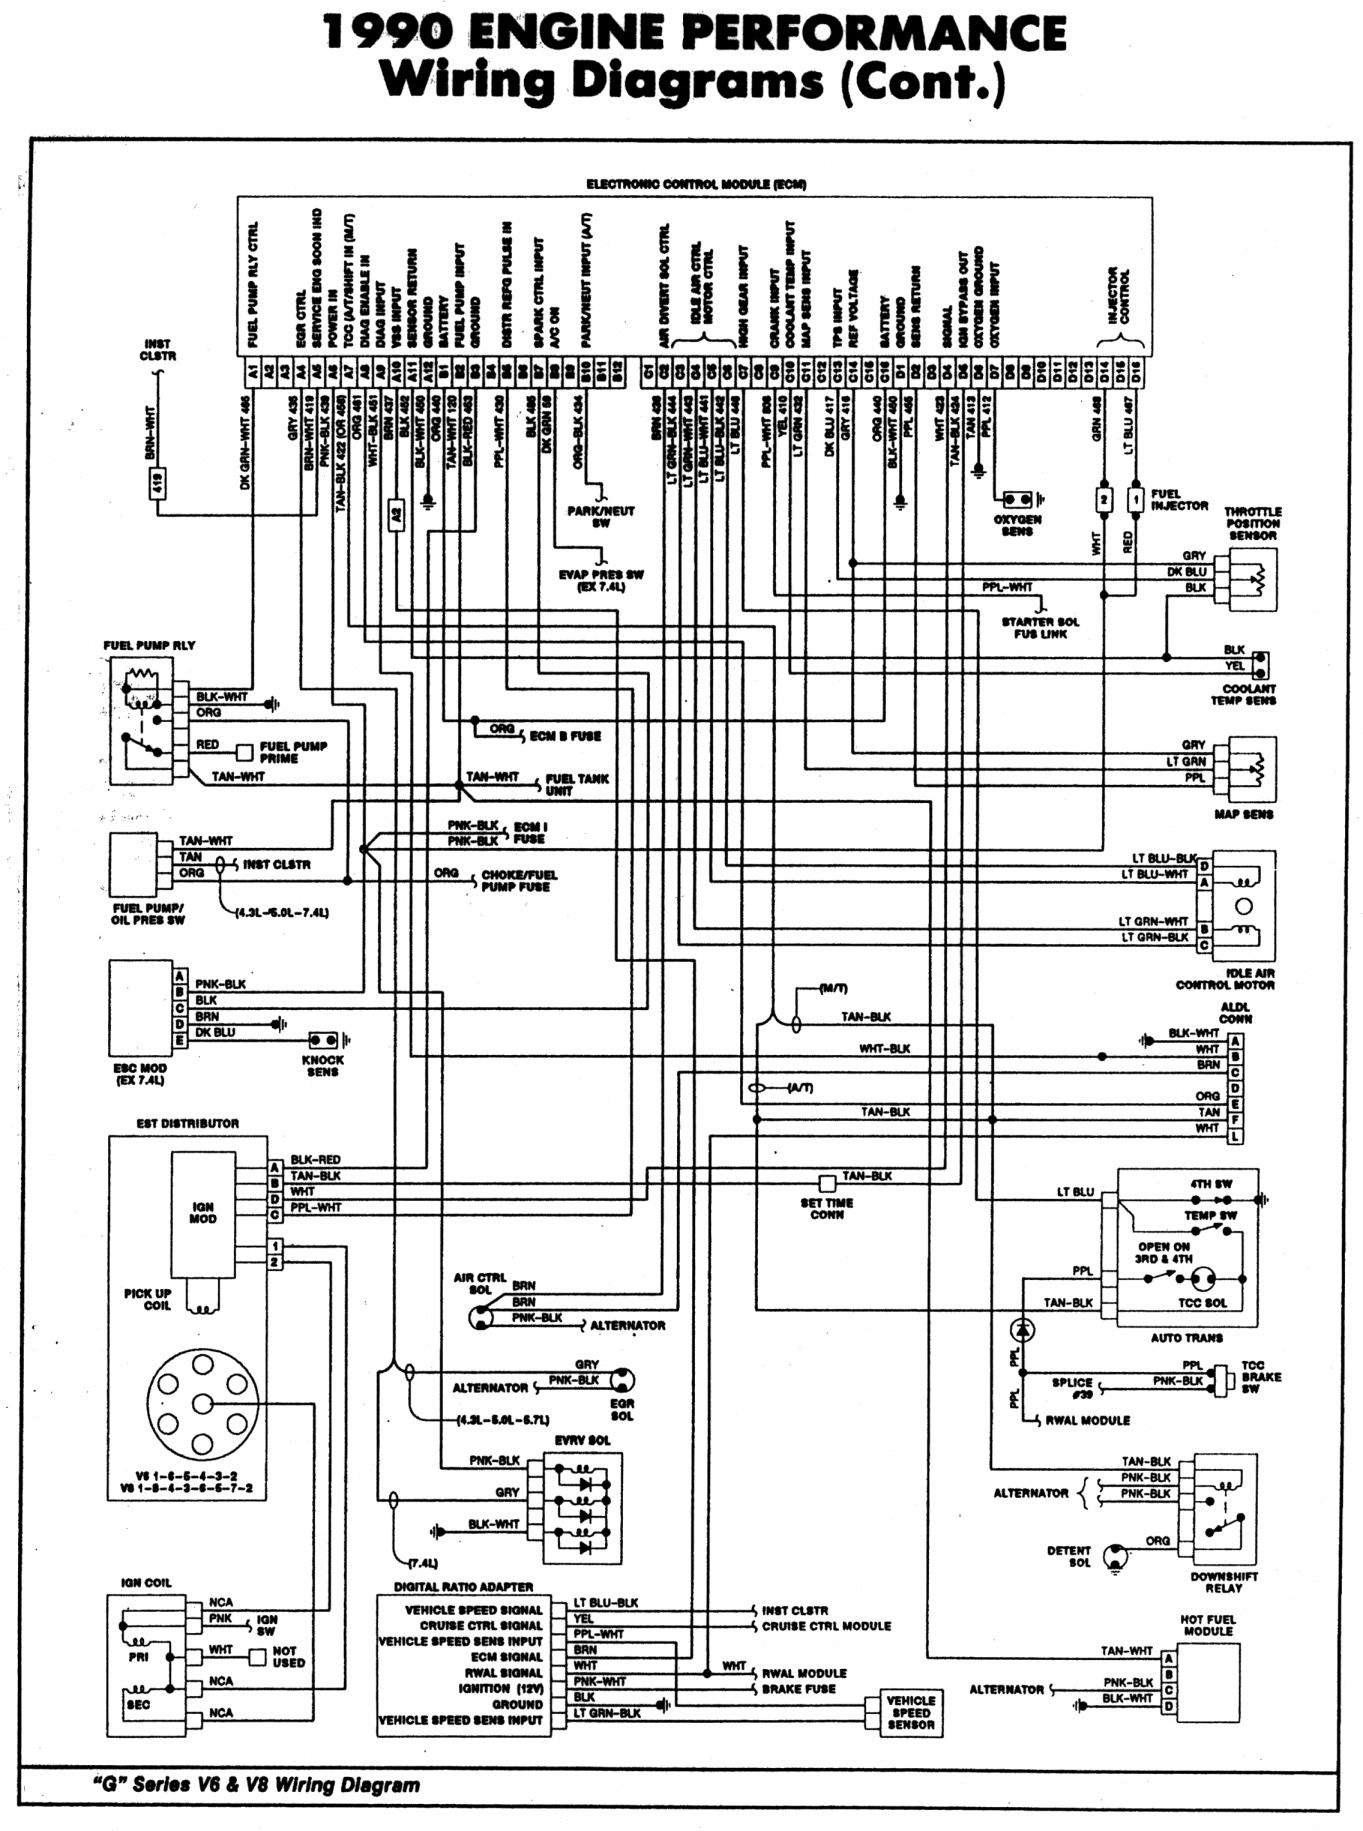 15 1990 Chevy Truck Wiring Diagram Electrical Wiring Diagram Chevy Trucks Chevy Pickups